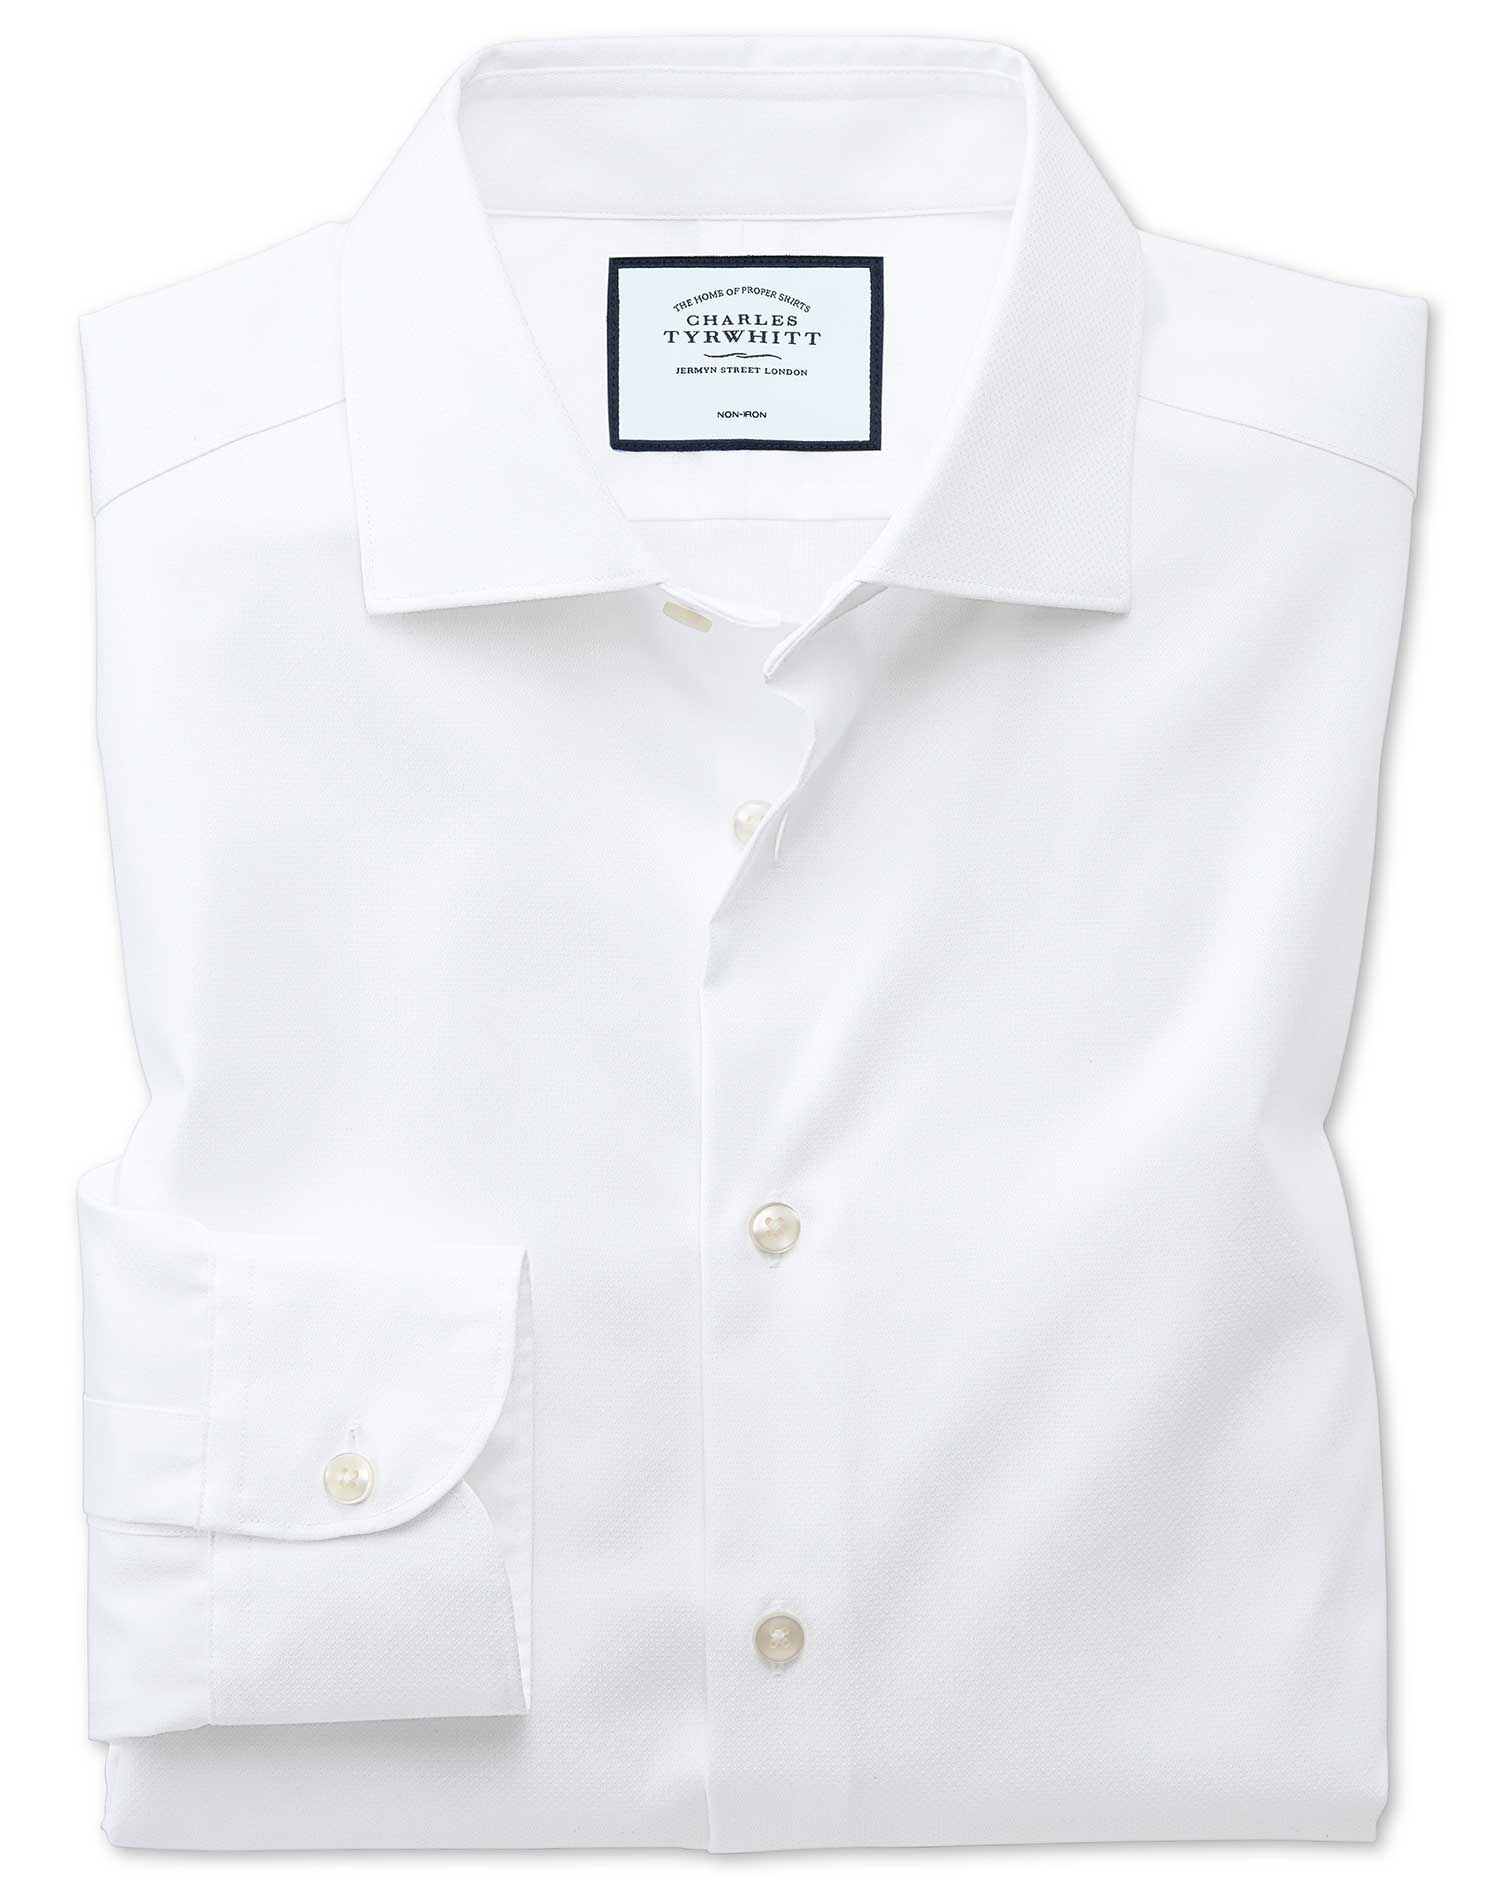 Slim Fit Business Casual Non-Iron Modern Textures White Cotton Formal Shirt Single Cuff Size 15/34 b